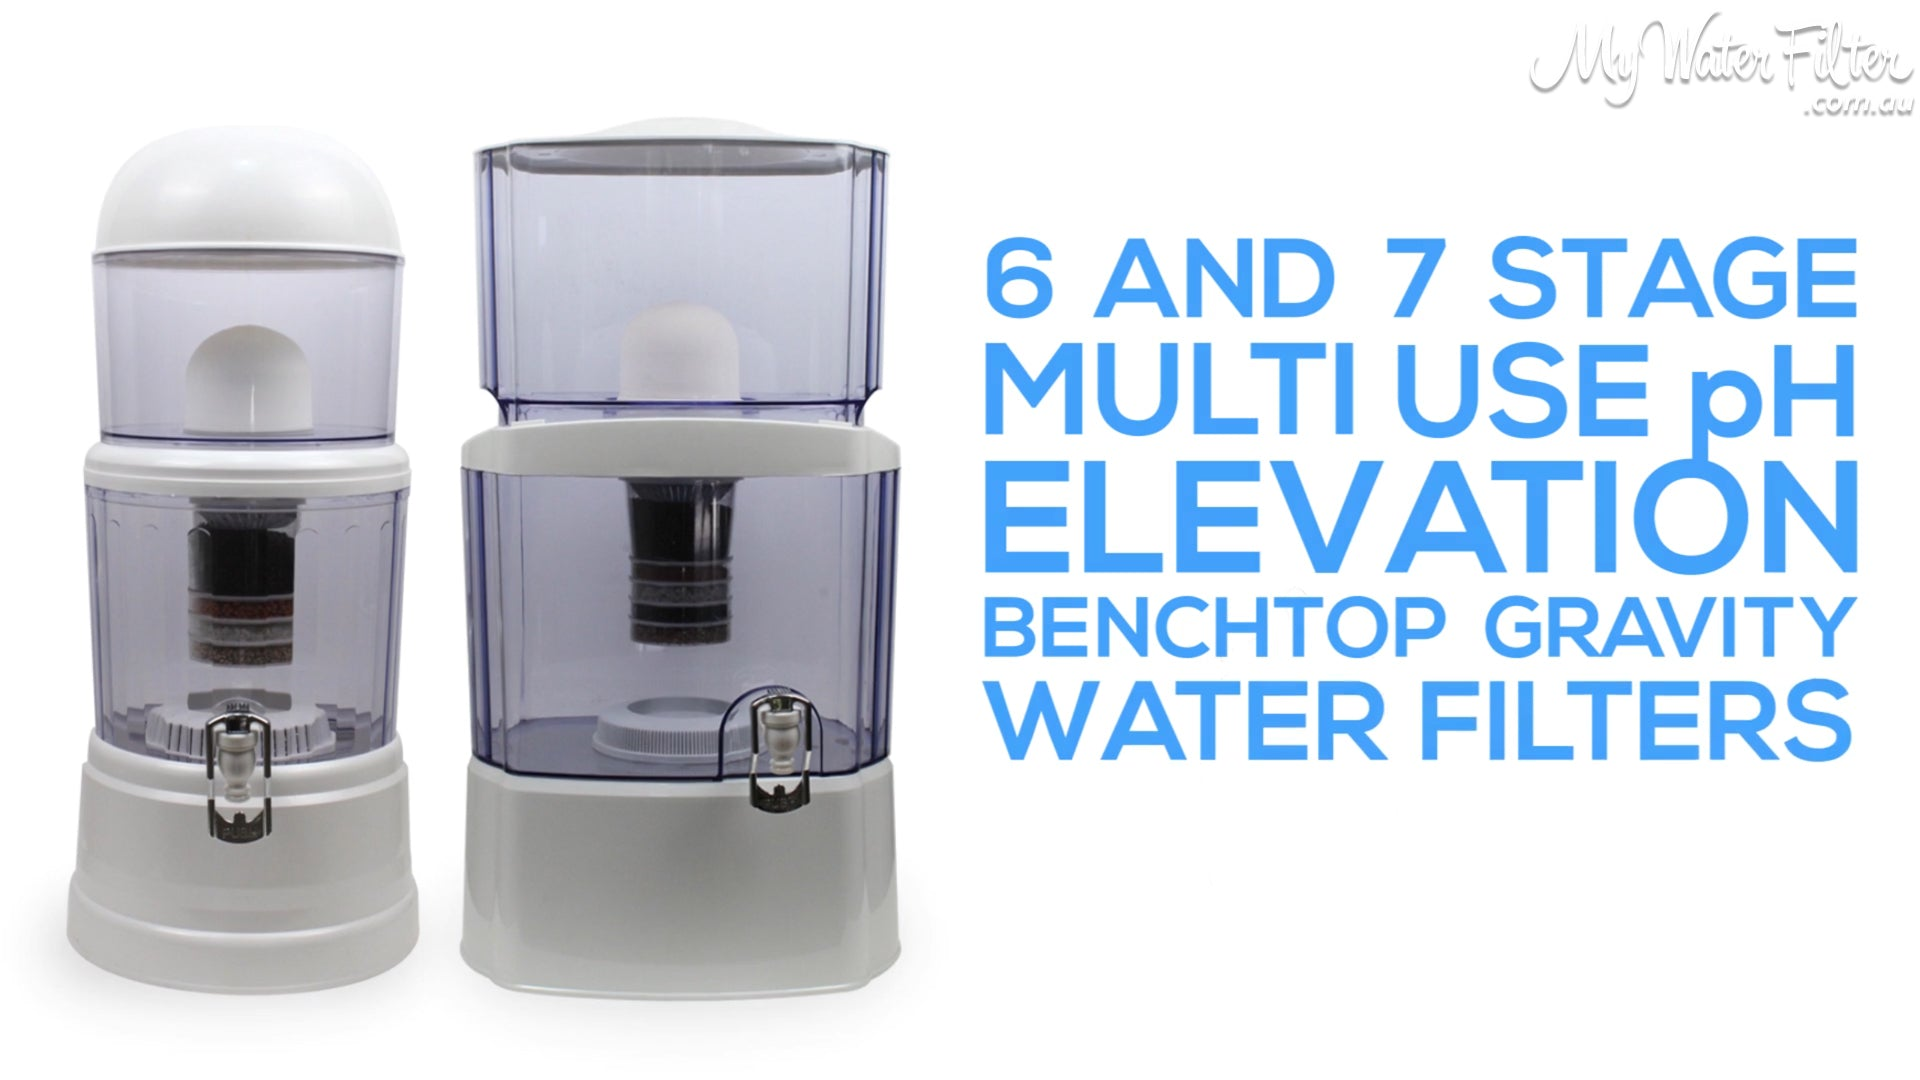 6 an 7 stage multi use pg elevation benchtop gravity water filters